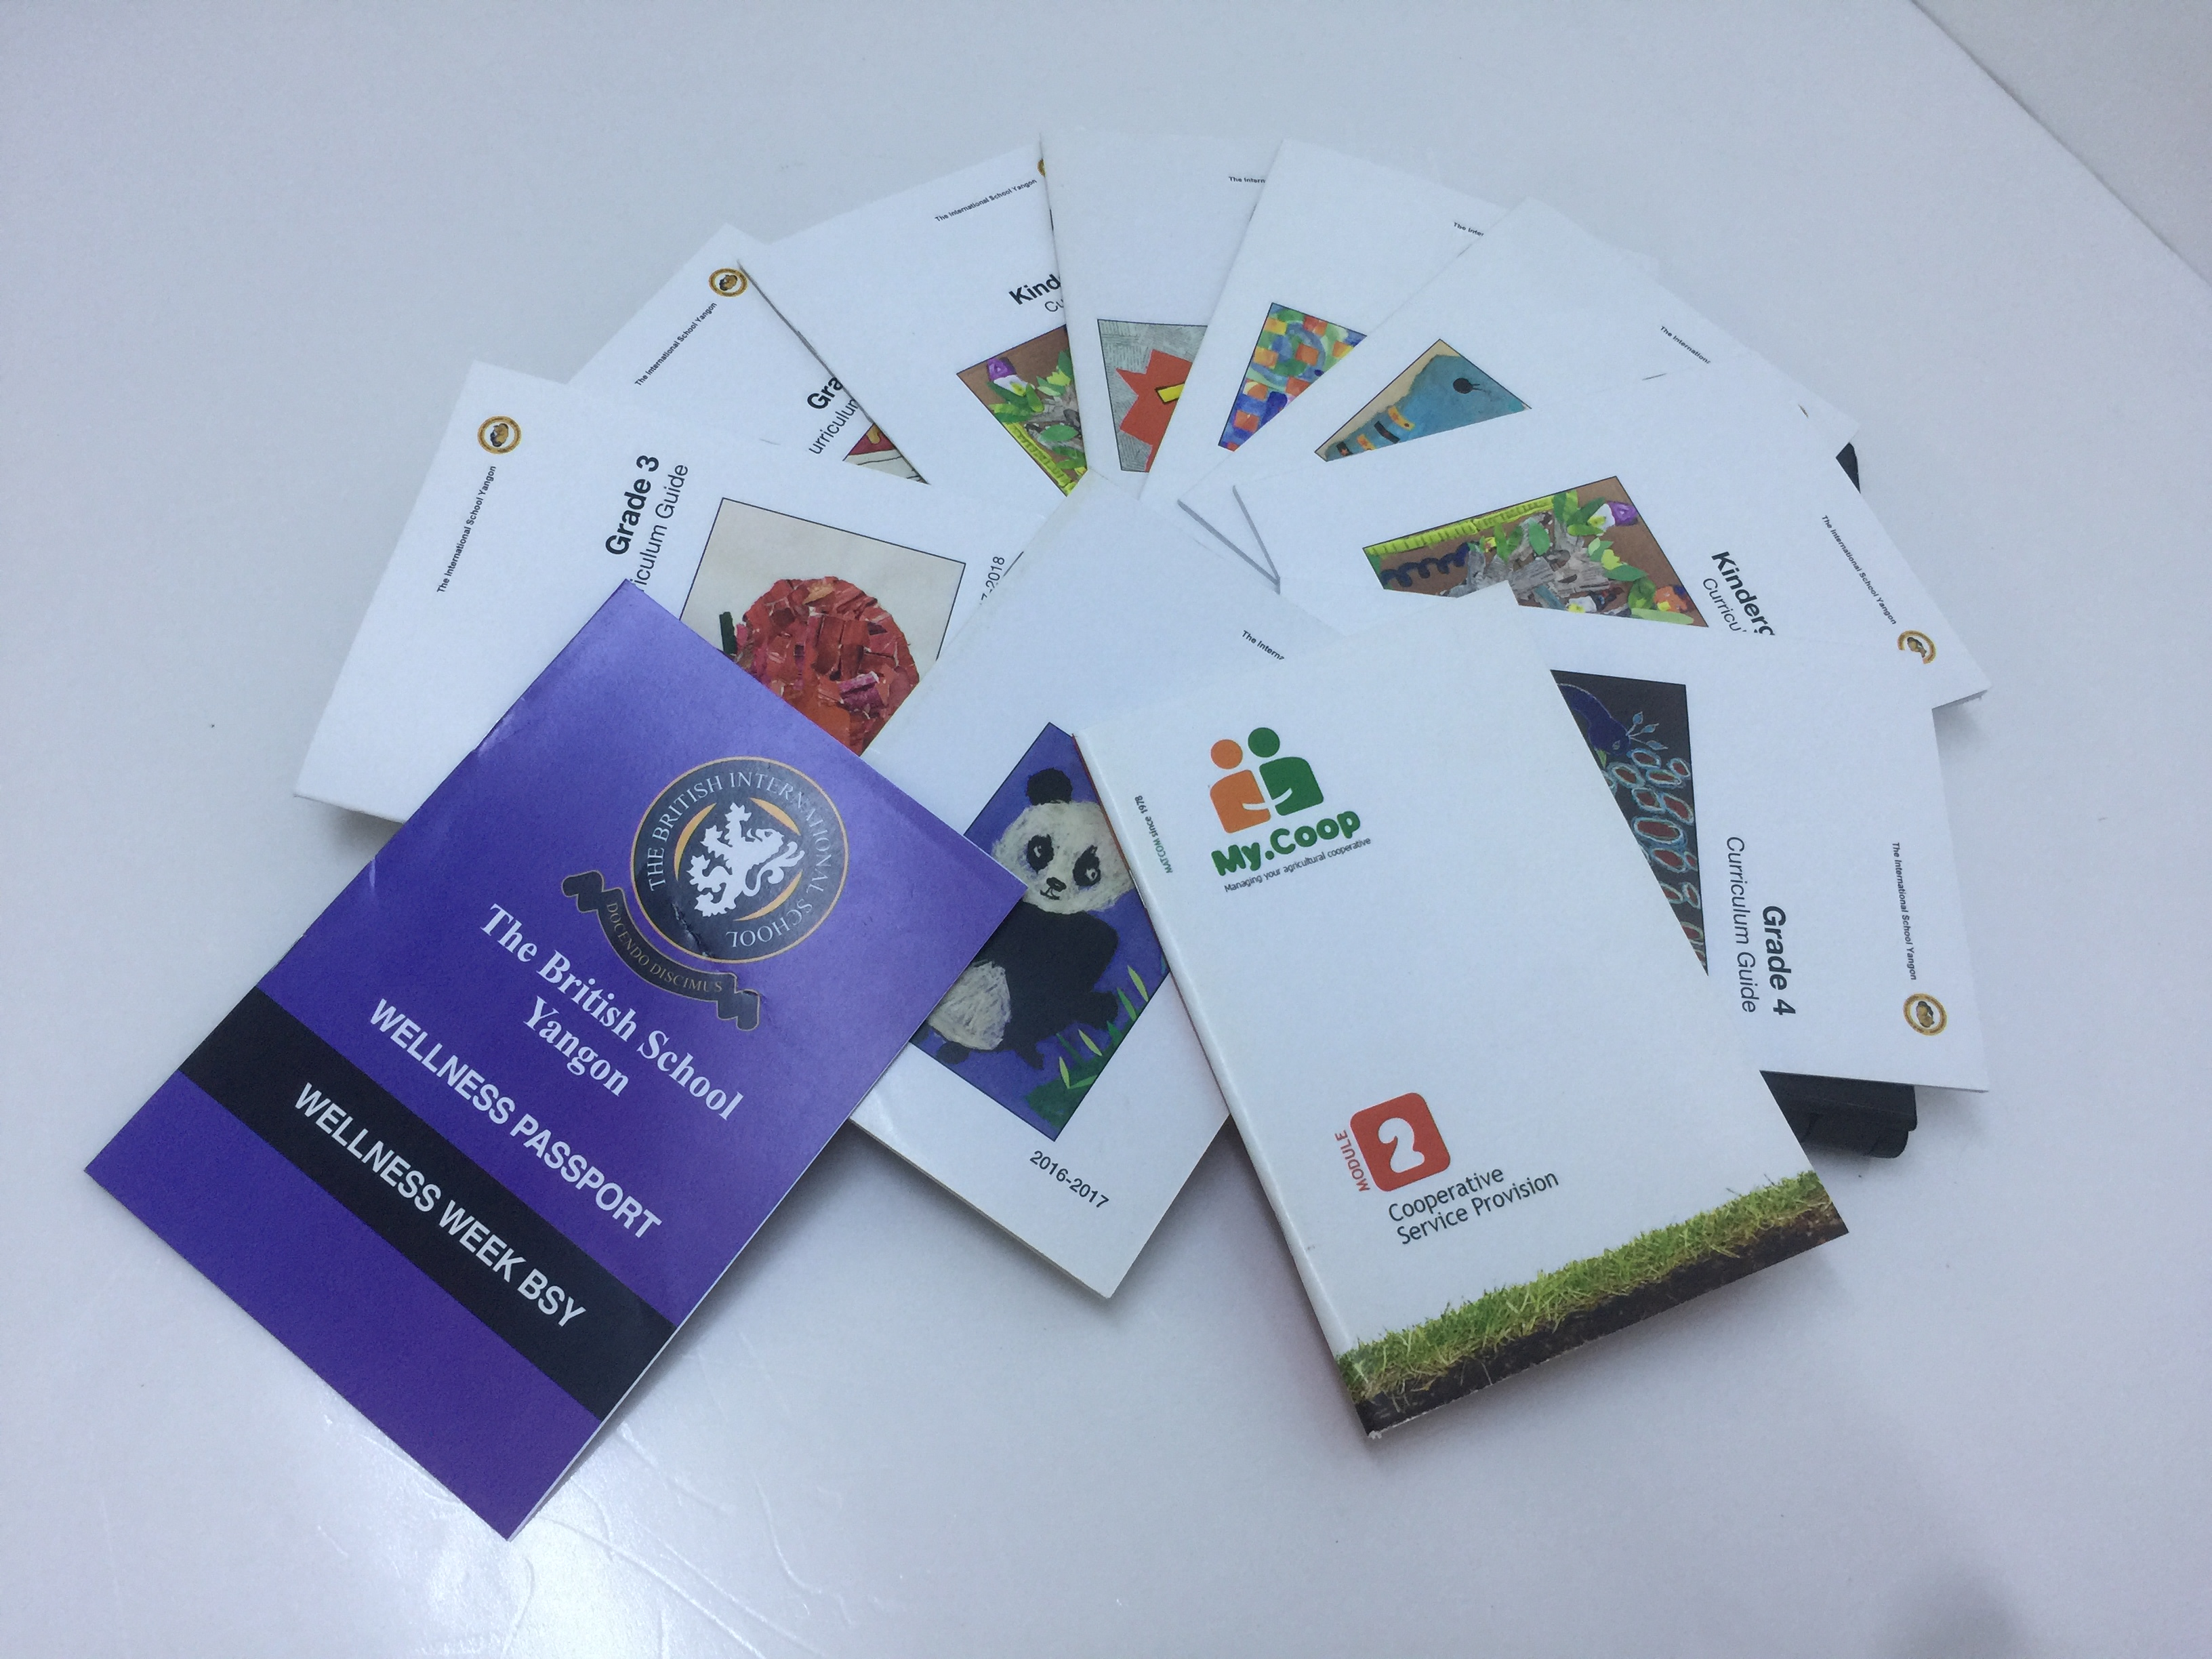 Various booklets